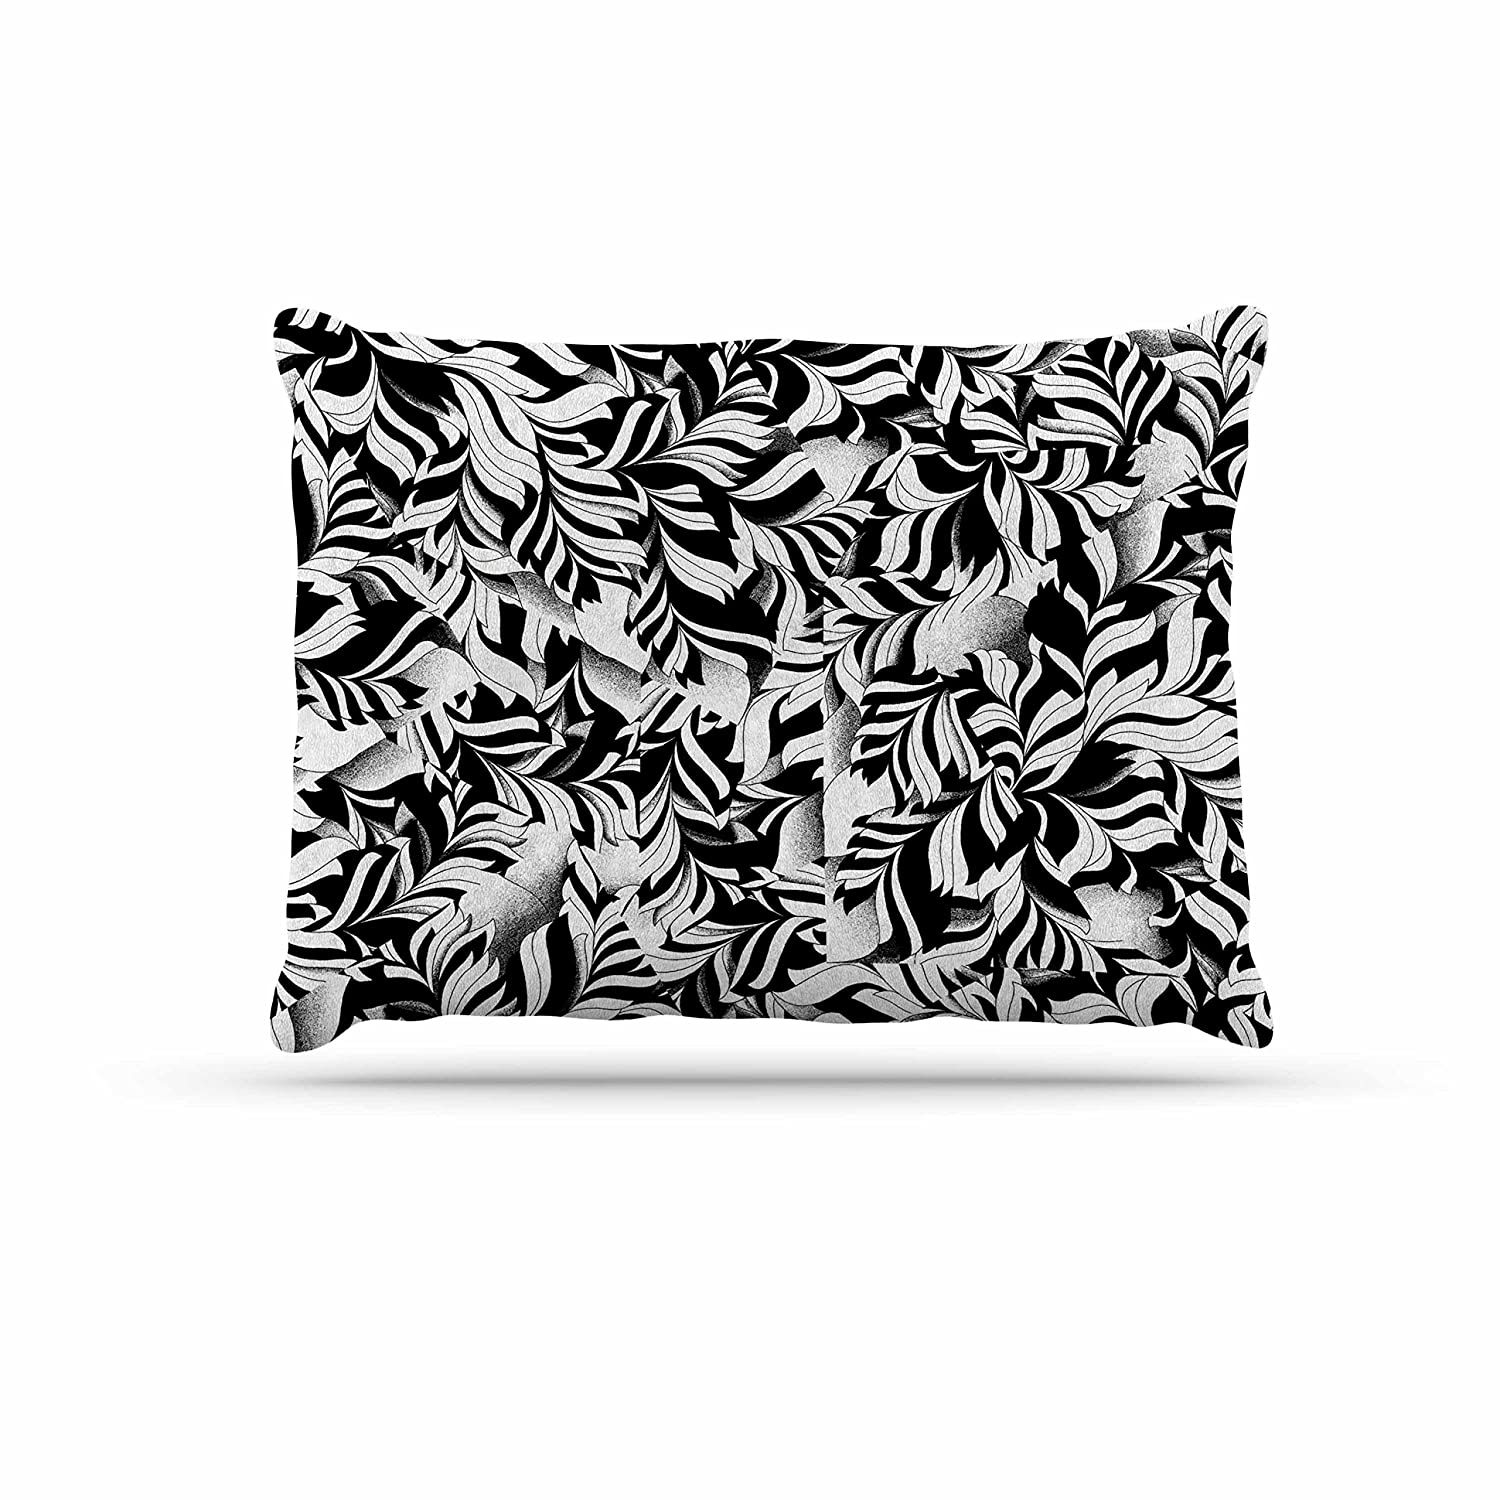 KESS InHouse Victoria Krupp Monochrome Leaves Mosaic Black Nature Dog Bed, 30  x 40